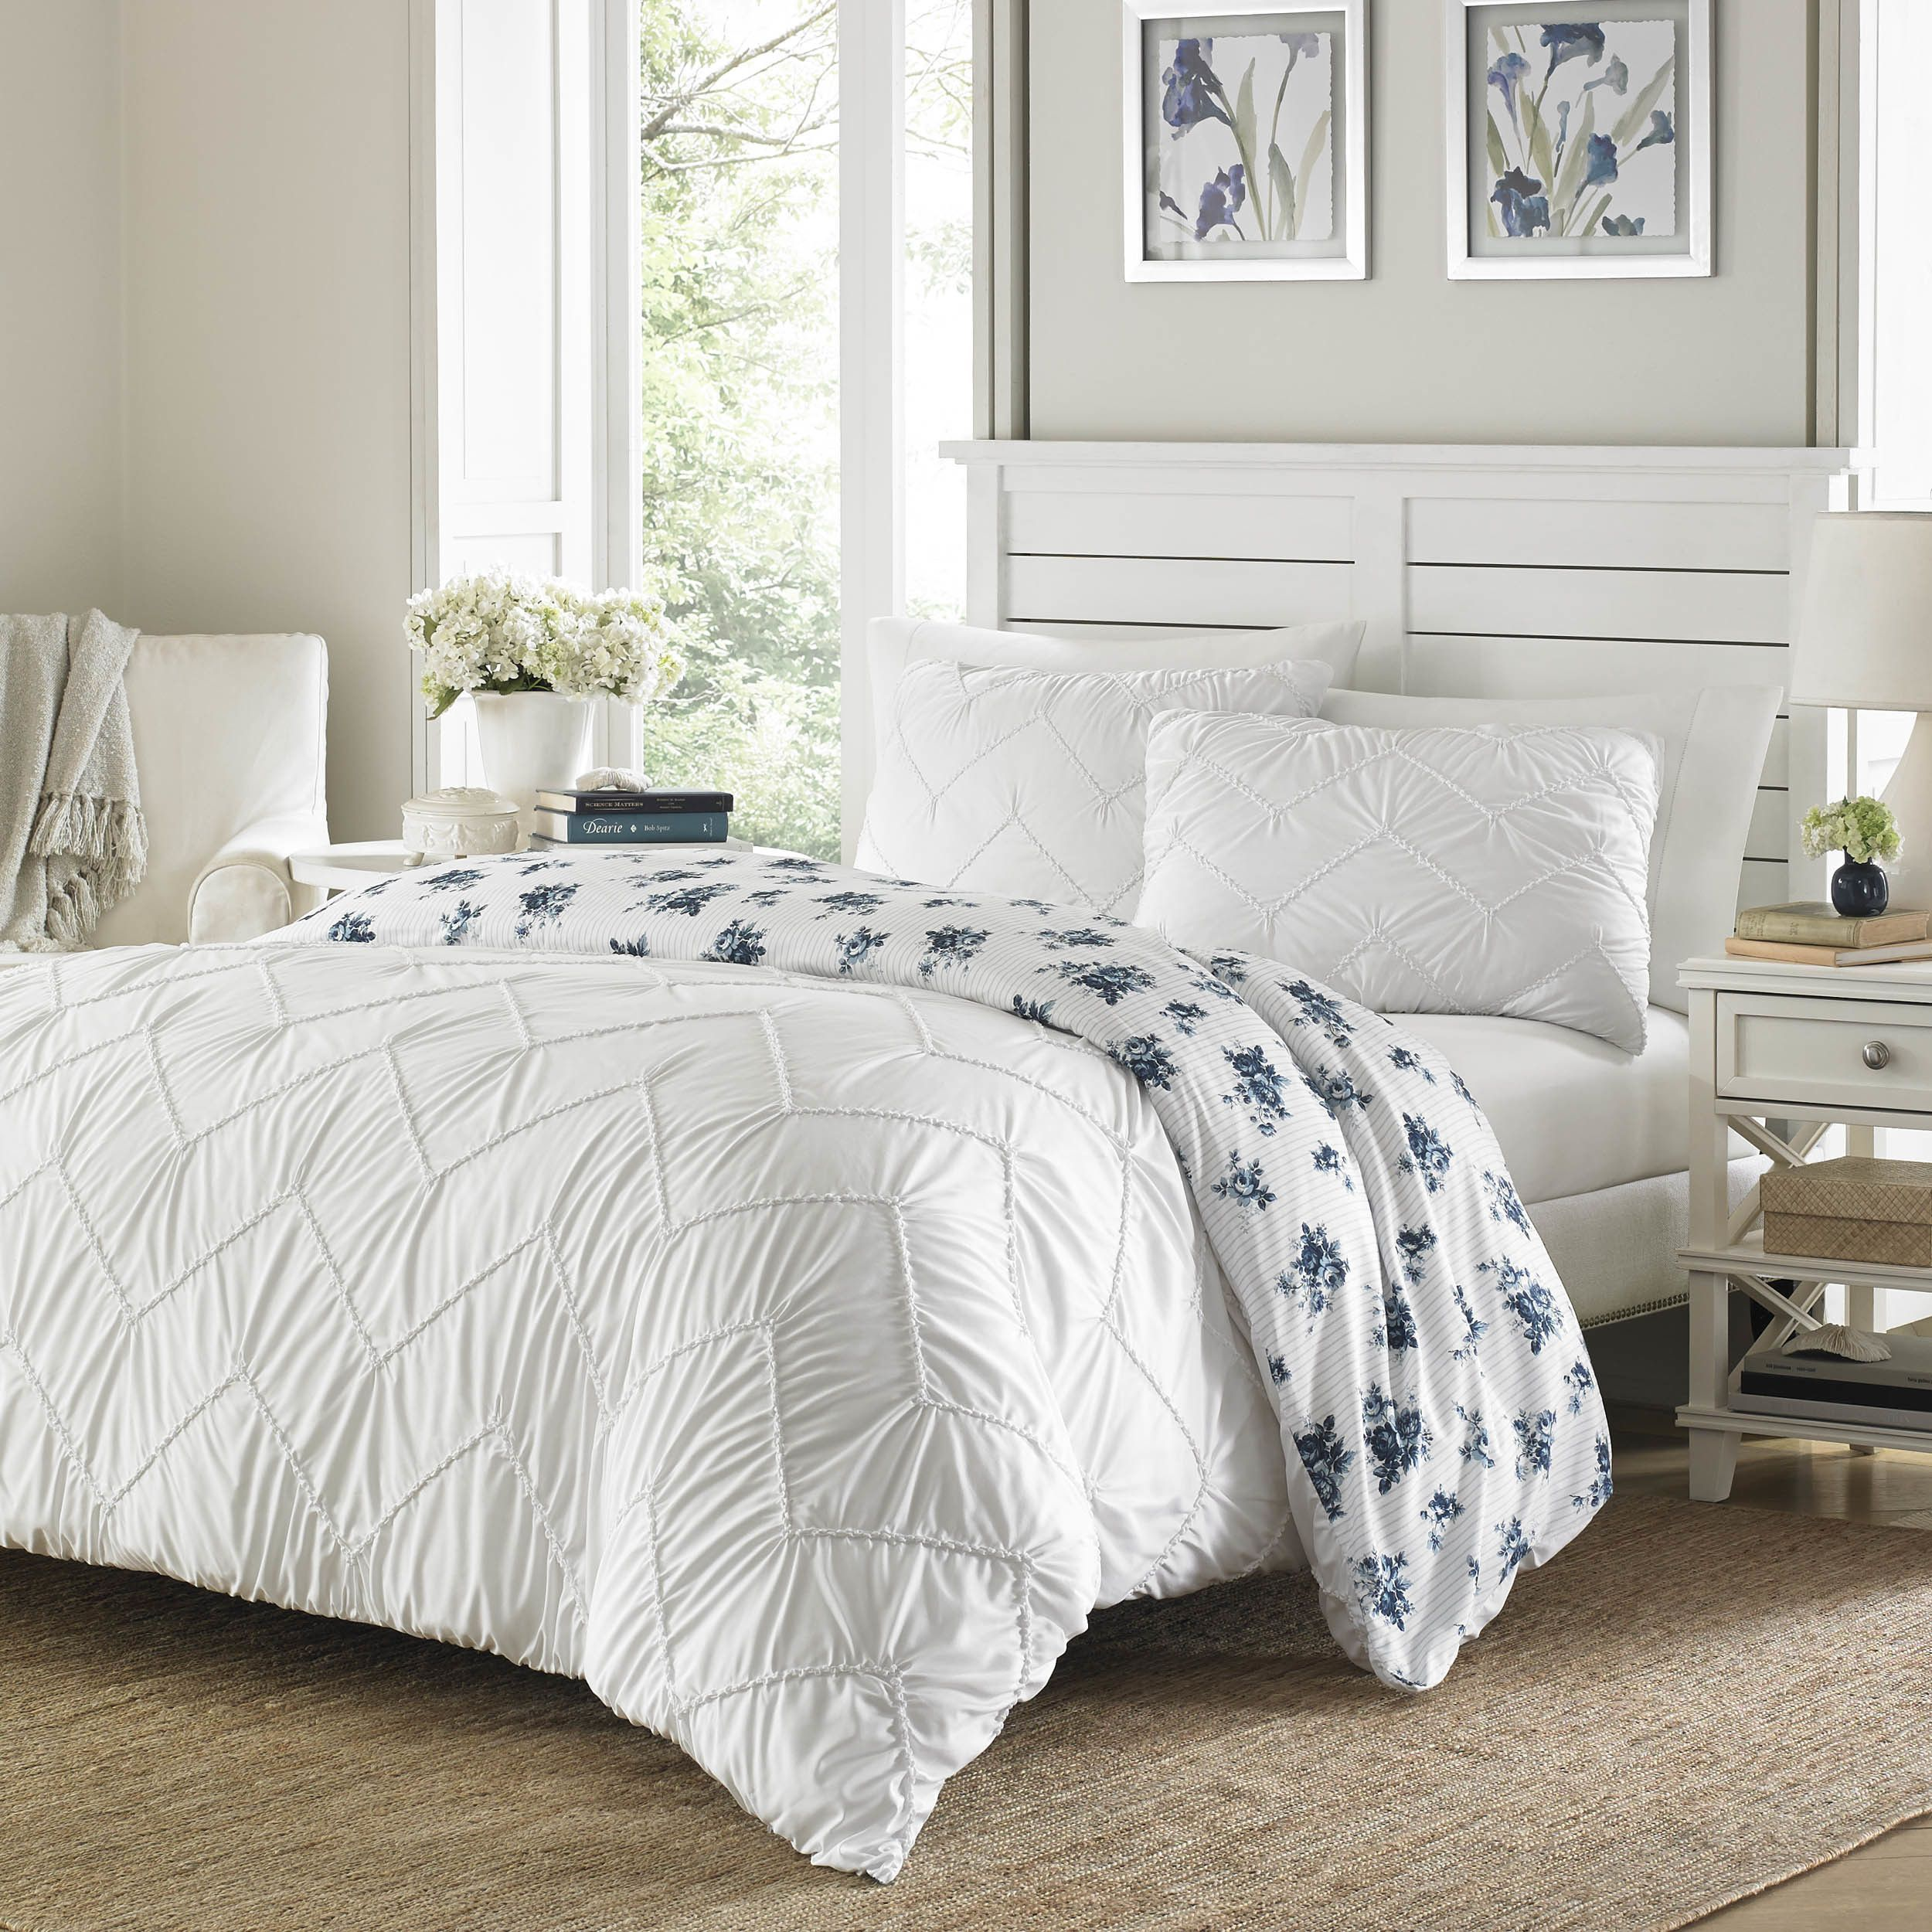 Stone Cottage Hilberry White Comforter Set Full Queen